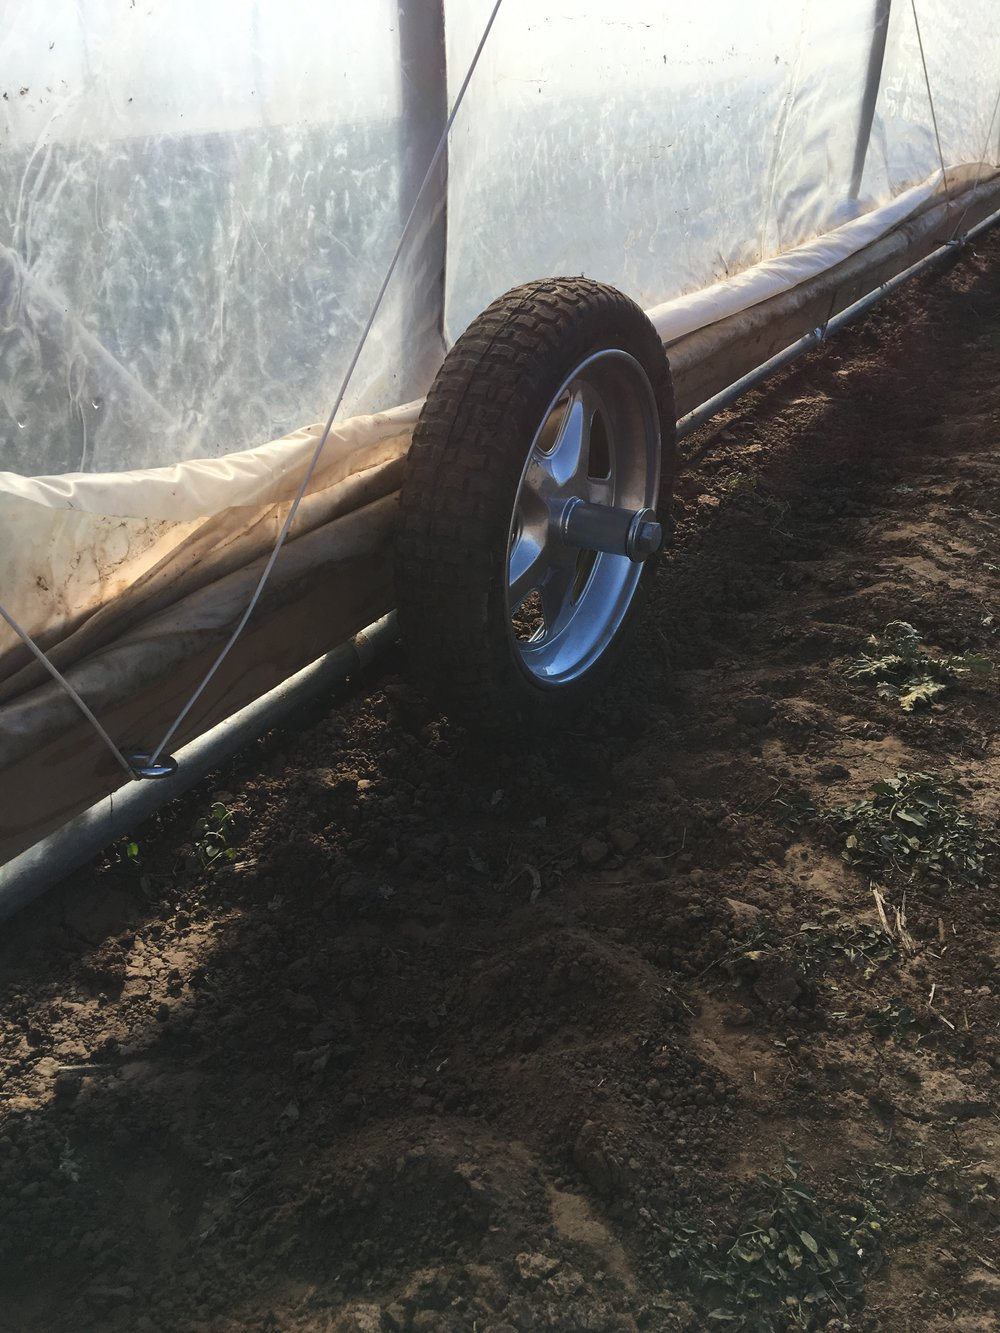 We attached wheelbarrow tires to the front end of the Moveable Greenhouses